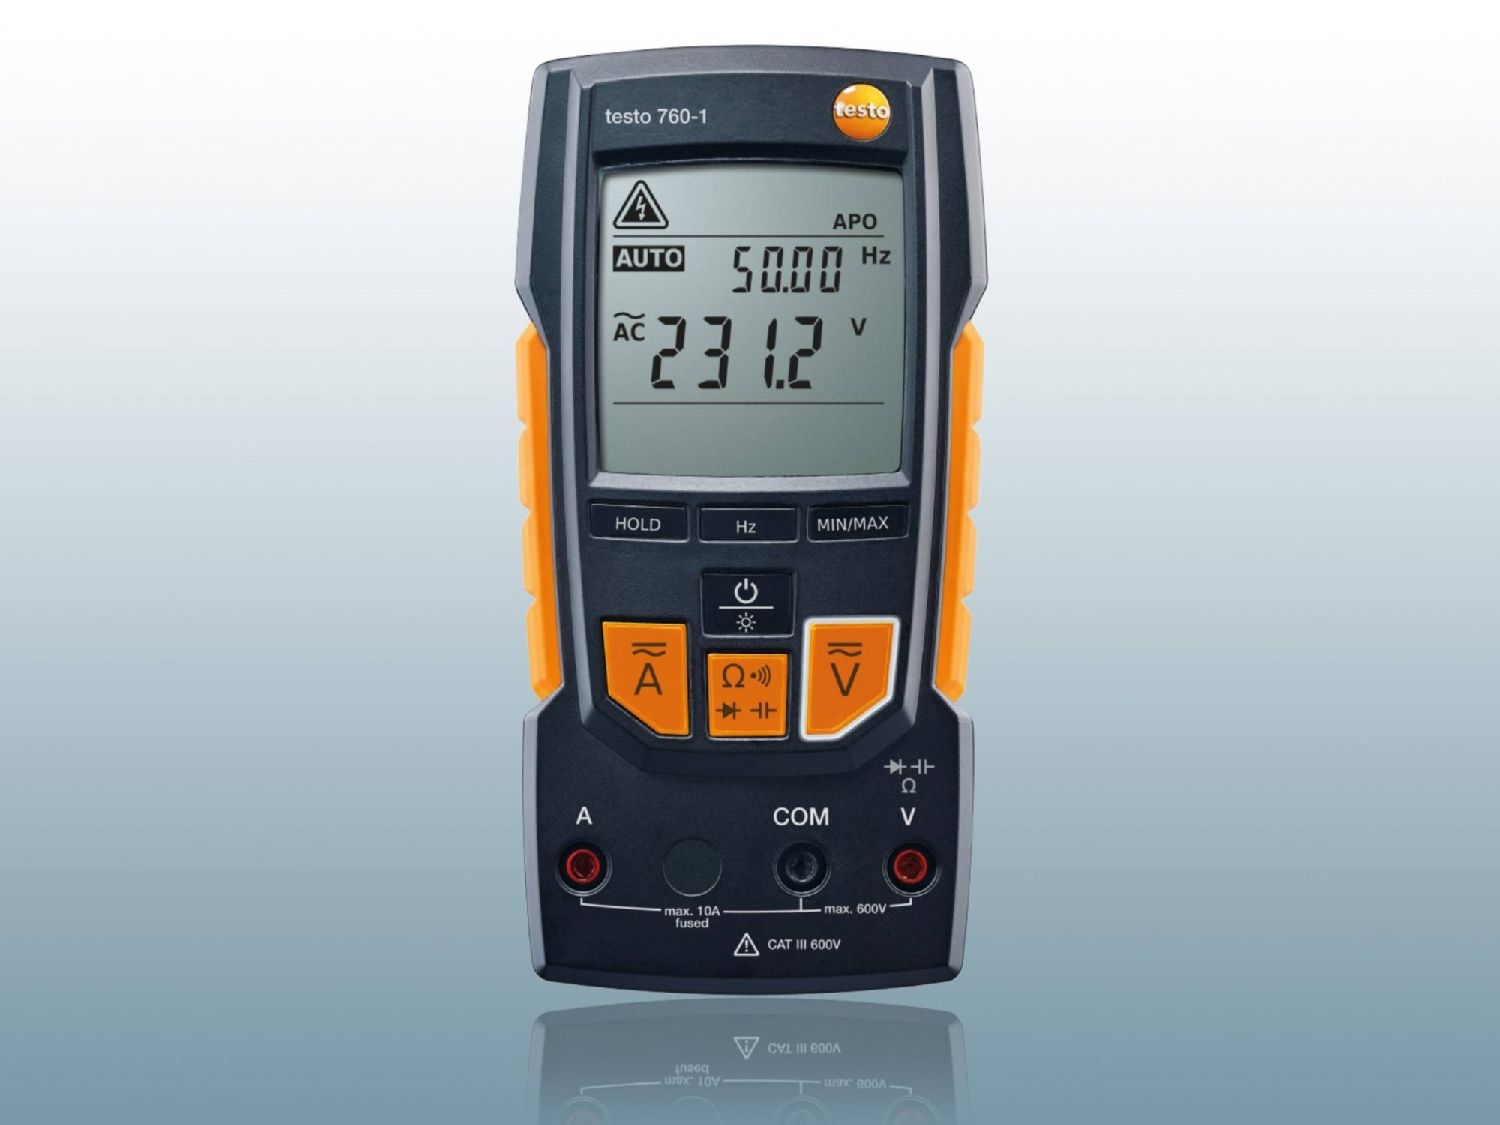 Digitale multimeter testo 760-1